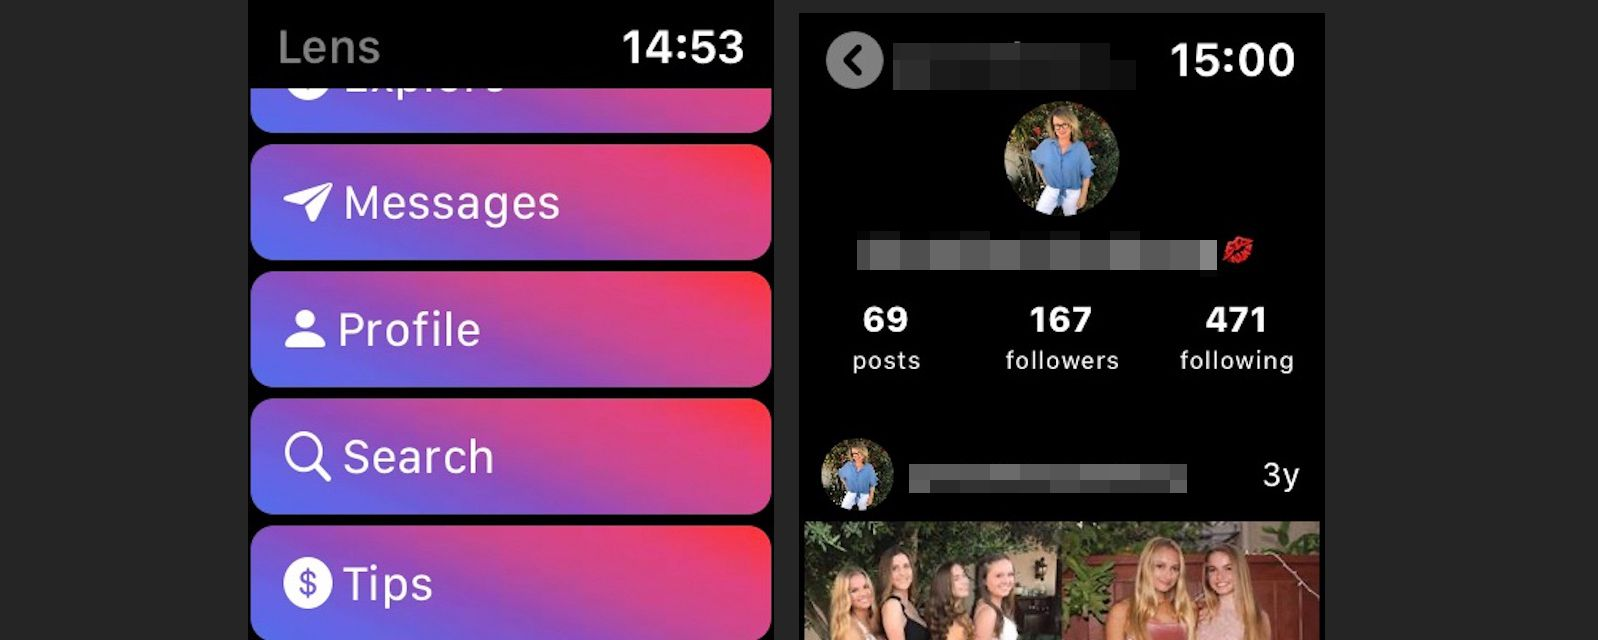 Tap Profile to go to your profile page.